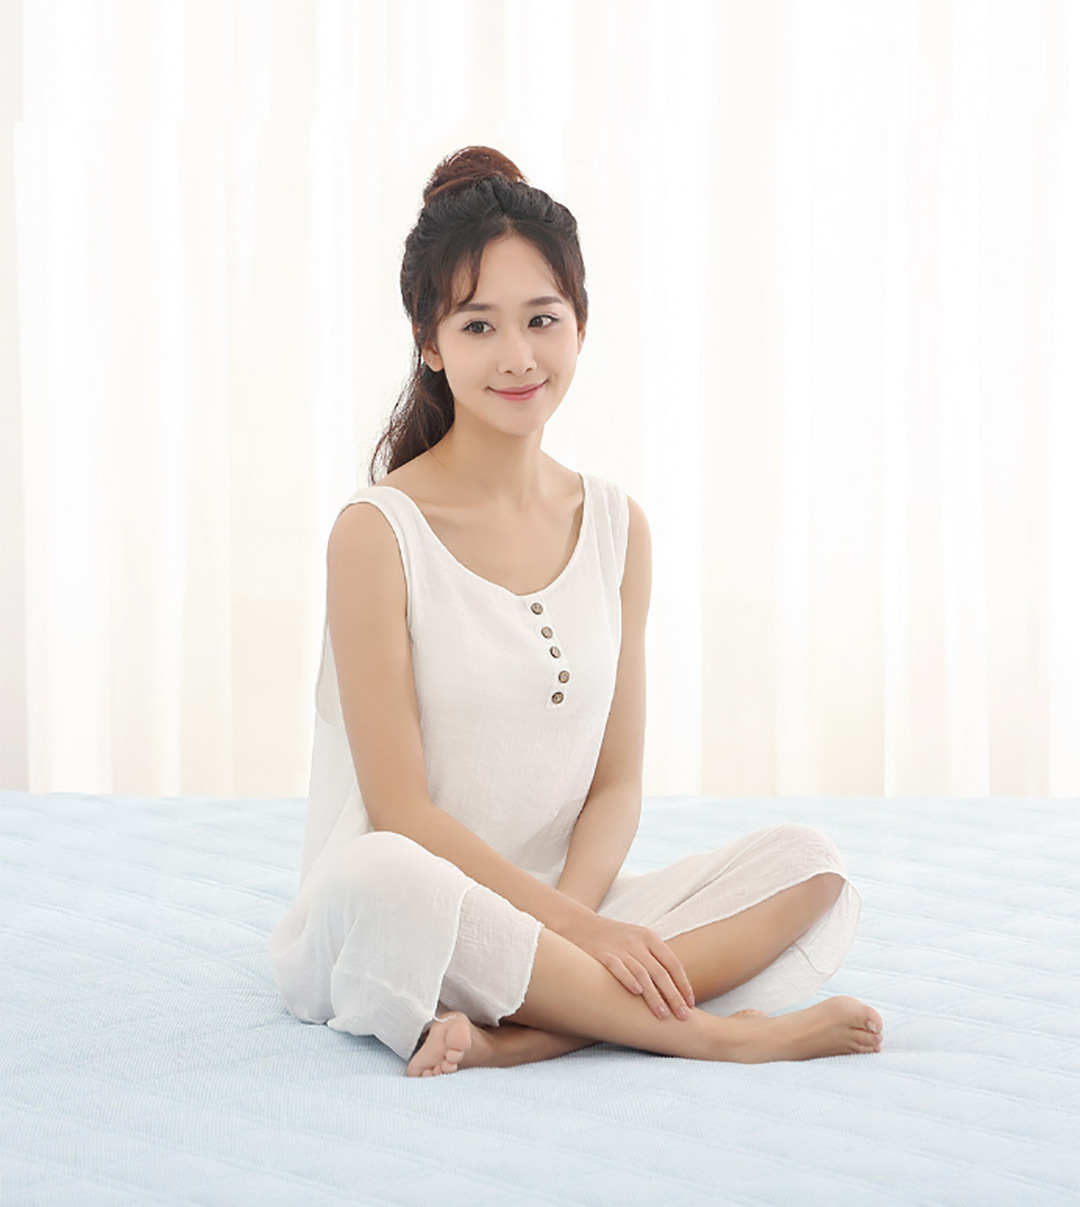 Xiaomi 8H Washable Cooling Soft Bed Cover